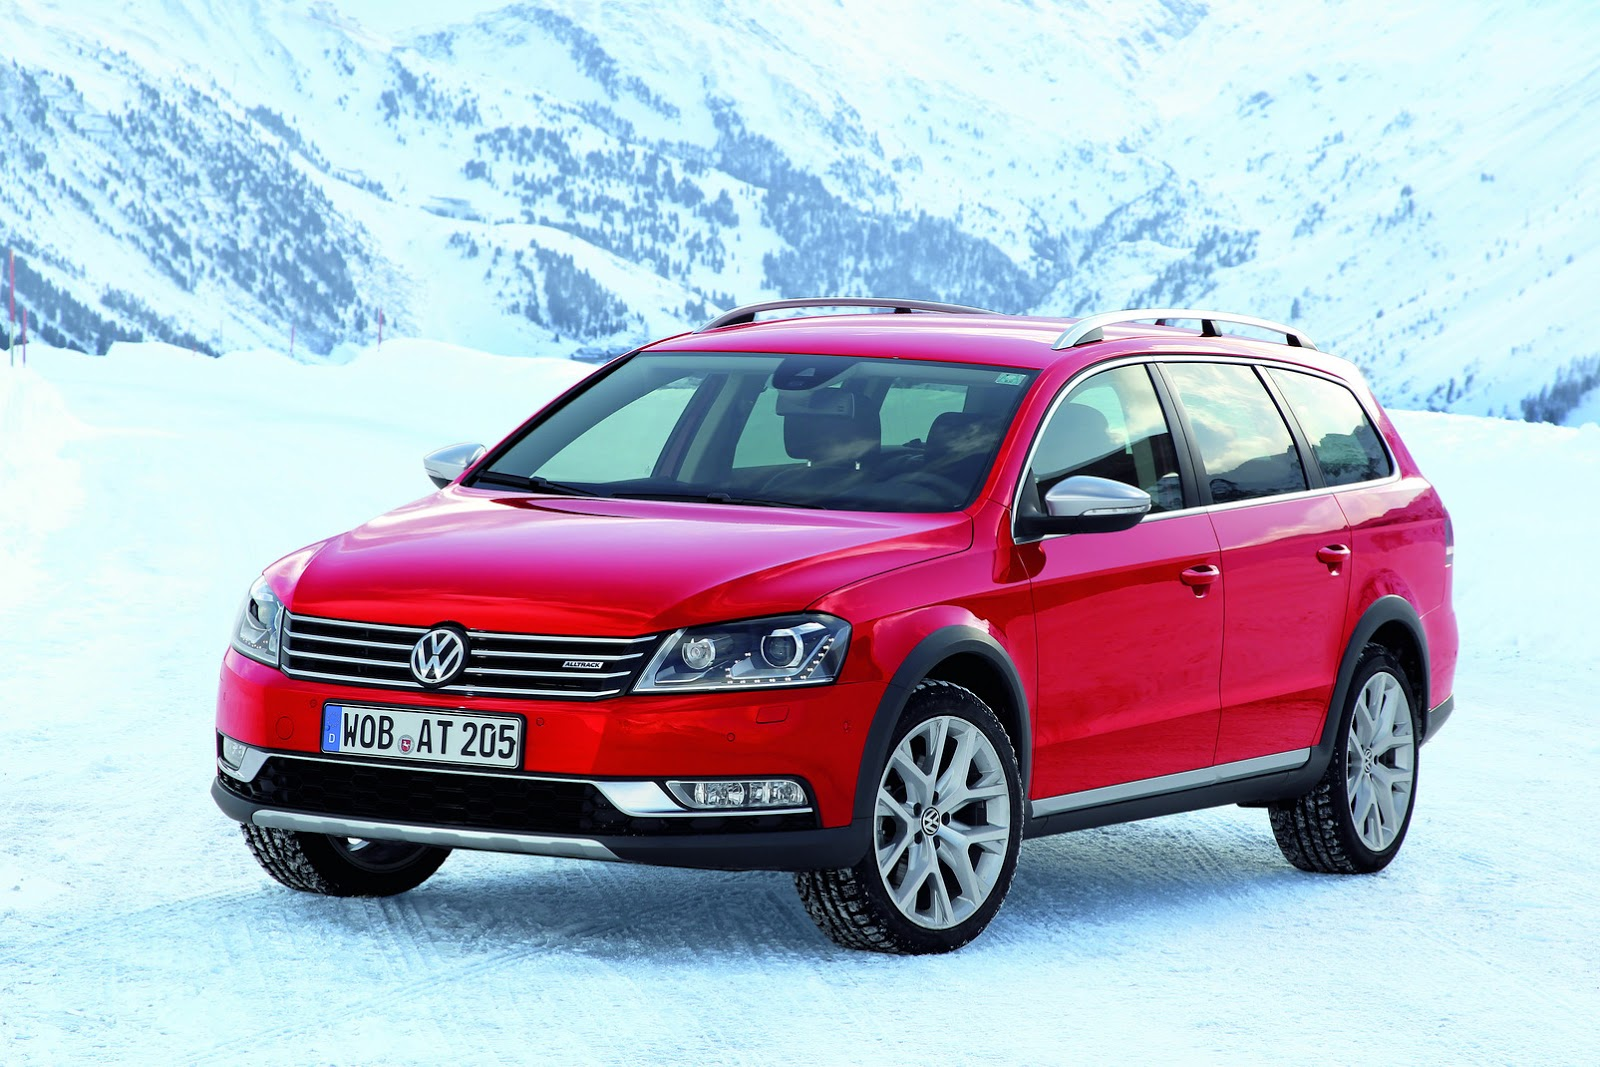 vw confirms new passat alltrack for next year carscoops. Black Bedroom Furniture Sets. Home Design Ideas